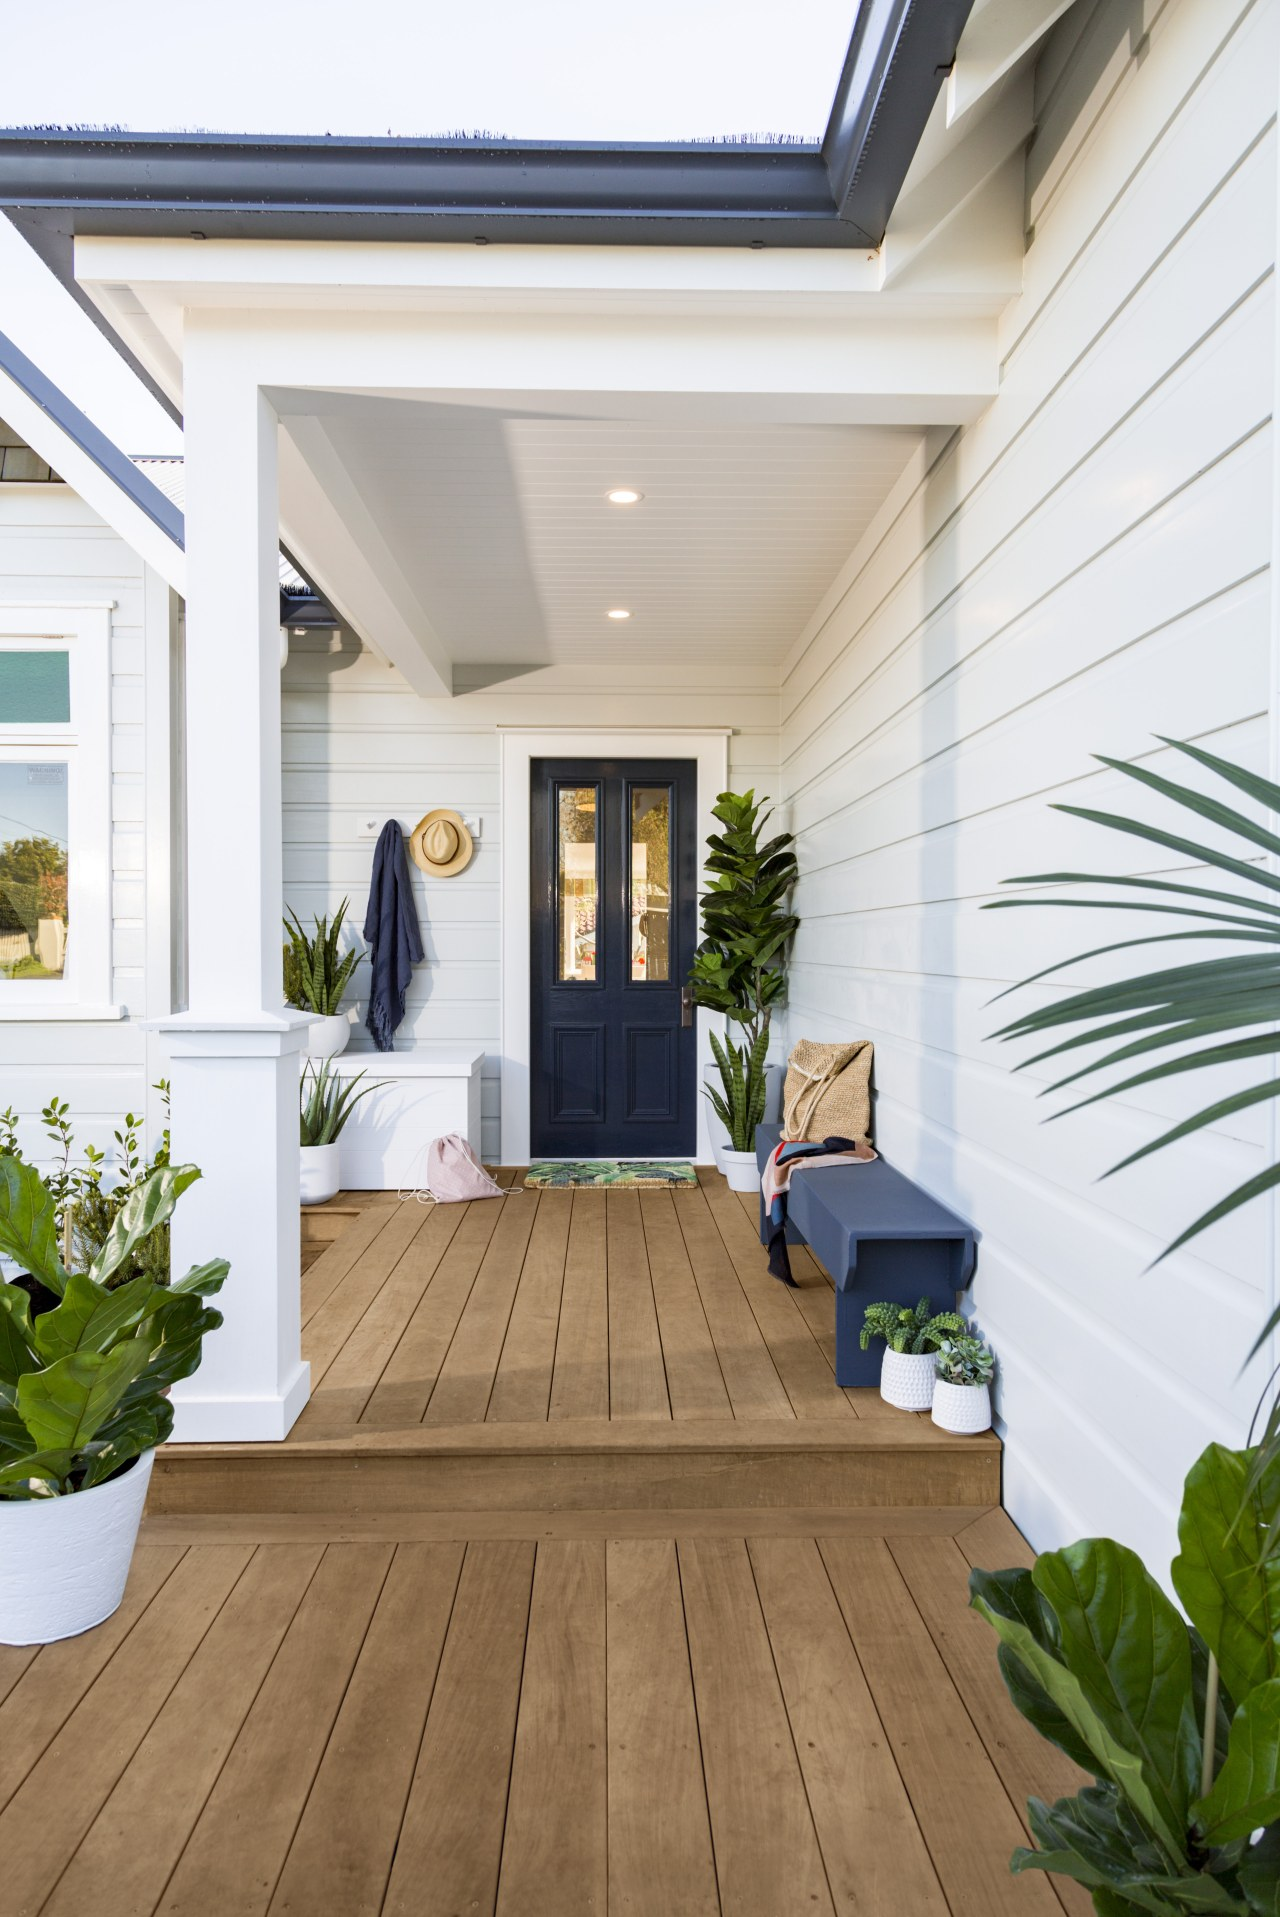 Emily Sommerville Ryanporchblueresene Hf Perglacial Bluecoastpoured Milkslipstreamgrey Sealdriftwoodphoto balcony, daylighting, deck, floor, flooring, hardwood, home, house, interior design, property, real estate, window, wood, wood flooring, white, brown